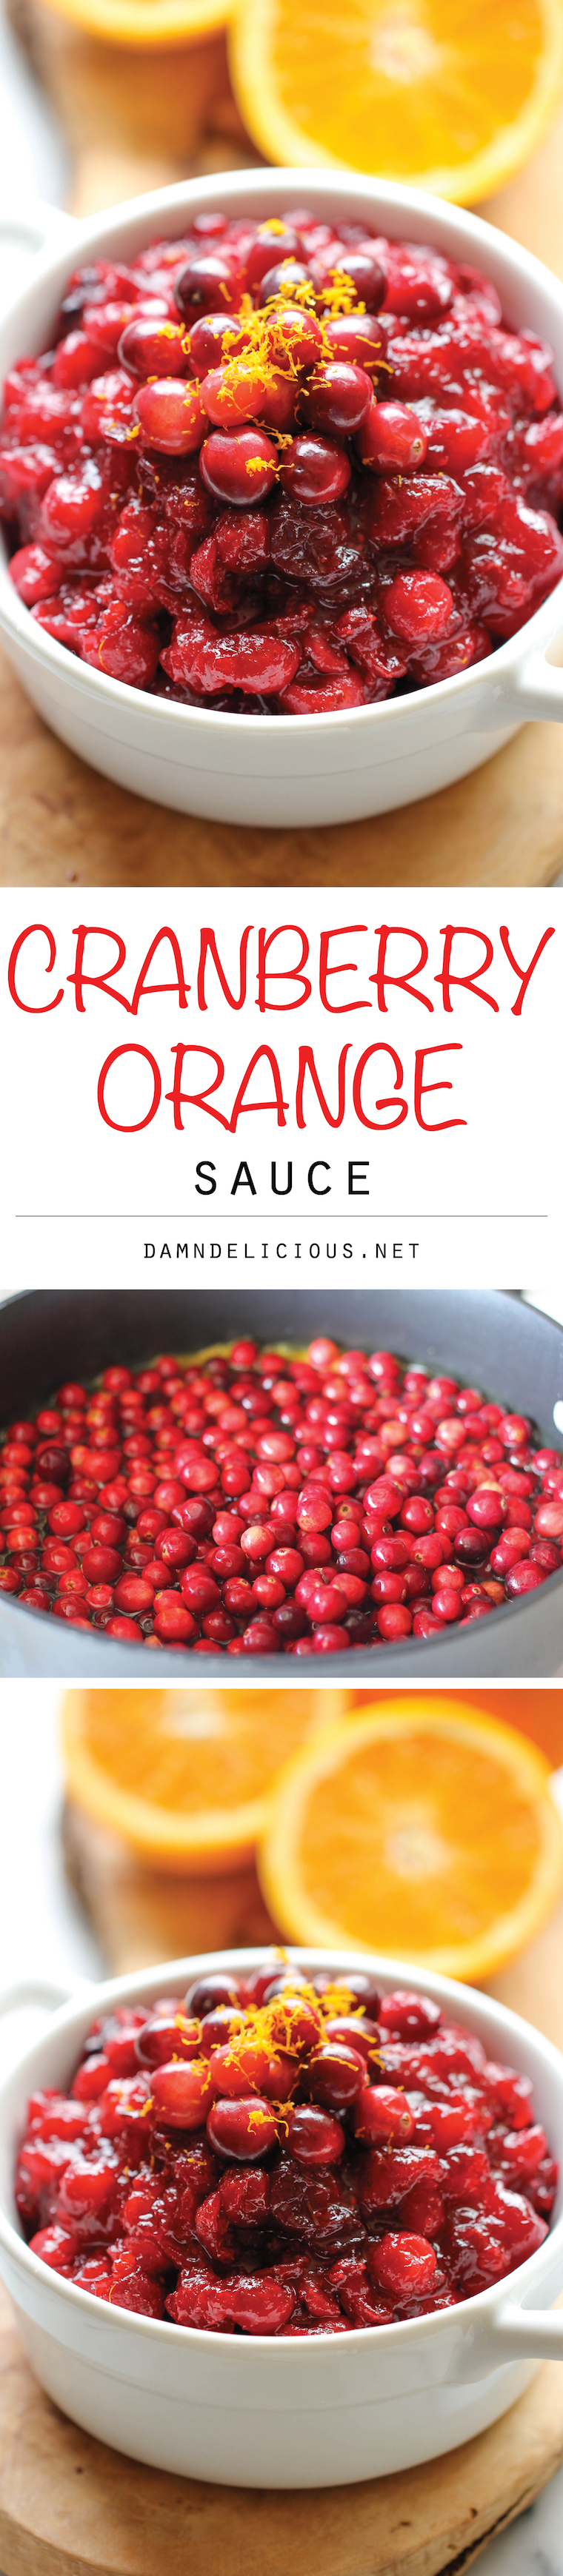 Cranberry Orange Sauce -Skip the canned cranberry sauce this Thanksgiving and make it right at home – it is embarrassingly easy to make with just 3 ingredients! You can even make it ahead of time!